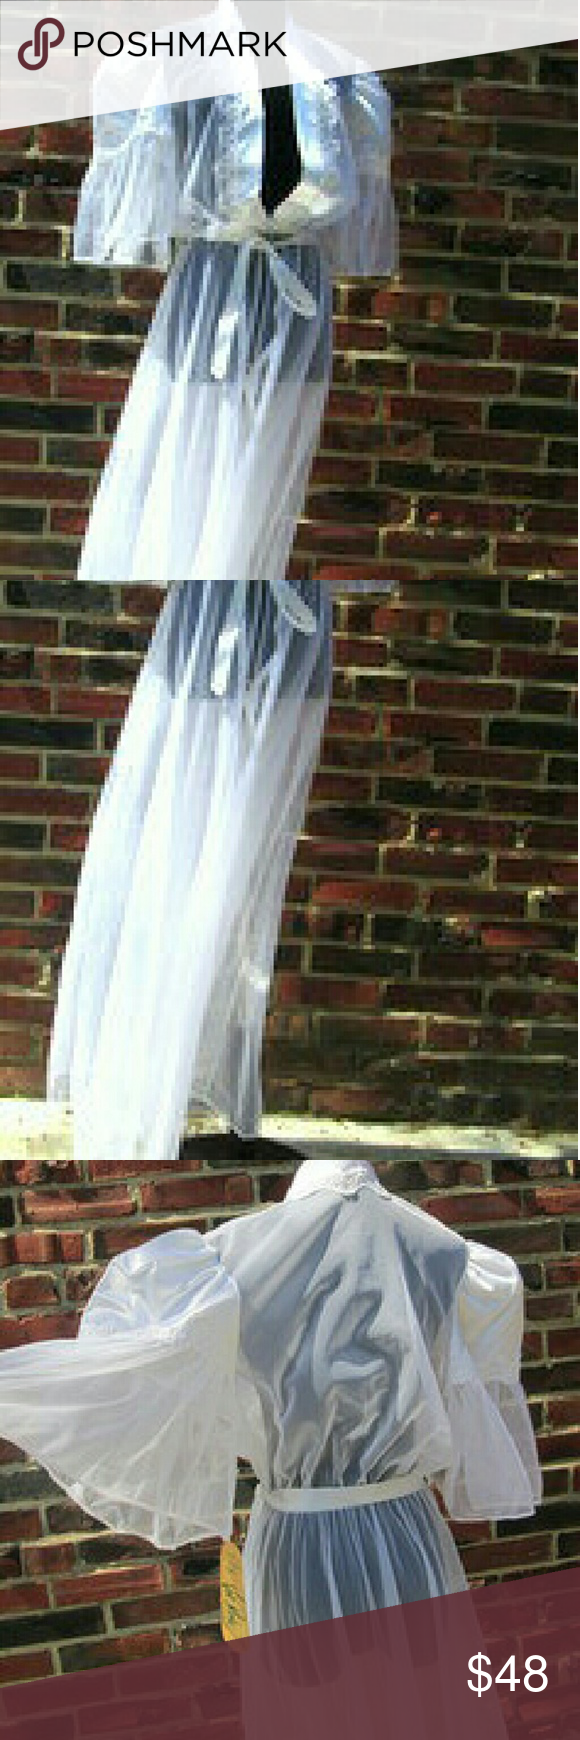 """Vintage White Sheer Robe with Lace Size Large Vintage White Sheer Robe.  Lace and Sheer White Robe. Very Beautiful. New With Tags. Wonderful Condition...No Flaws Label: Val Mode Made in USA Size Large...will fit size med as well Silky Nylon and Sheer and Lace Inticate Sleeves: 18""""  Bell Shaped  Bust: 38"""" - 42"""" Elastic empire Waist Front 1 Pearl Button Closure and Satiny Belt Total Length: 58"""" Stunning ! Vintage  Intimates & Sleepwear Robes"""